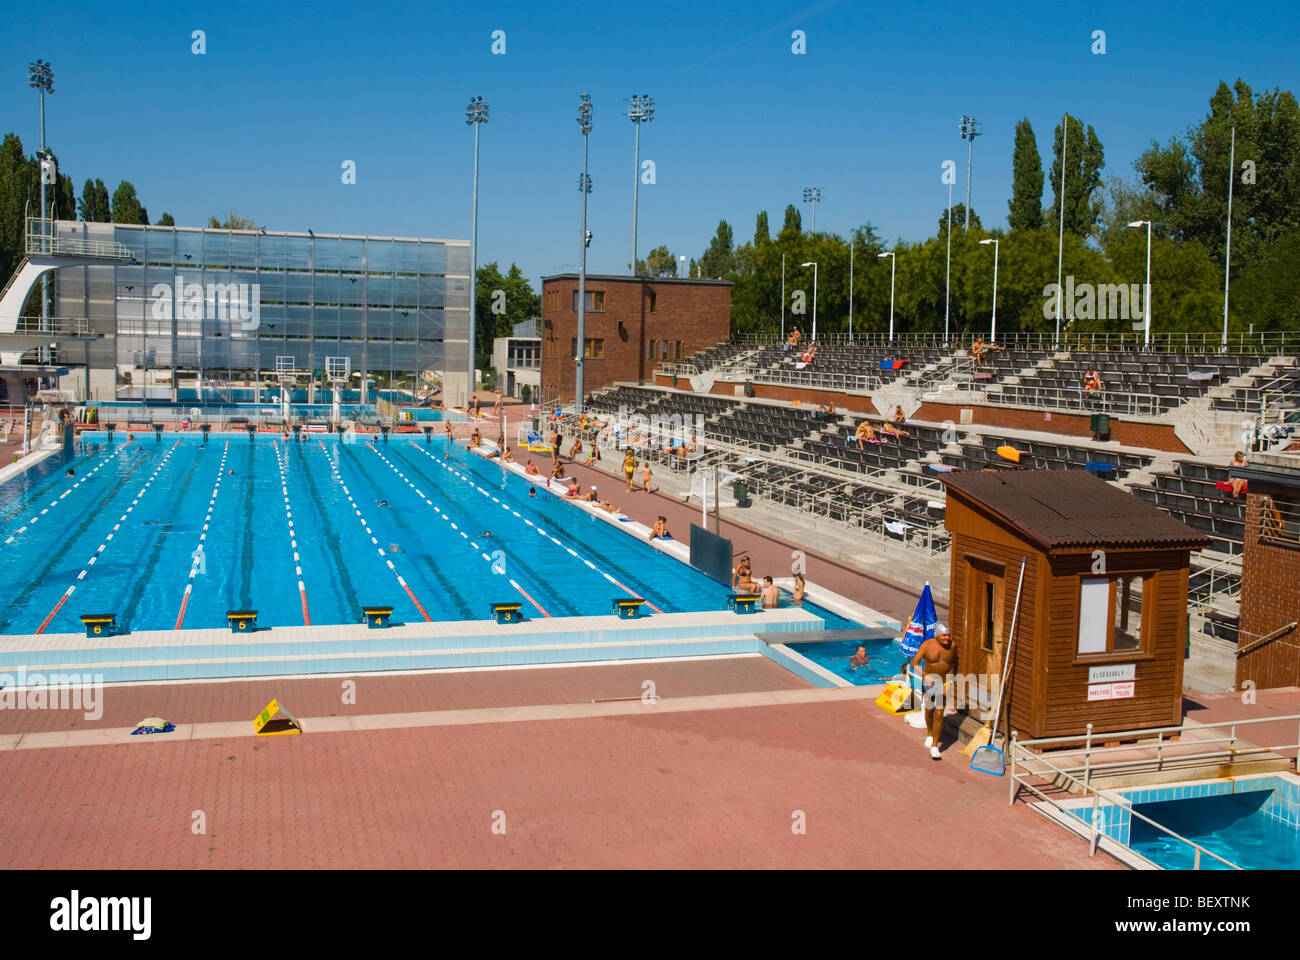 Hajos alfred budapest stock photos hajos alfred budapest stock images alamy for Margaret island budapest swimming pool